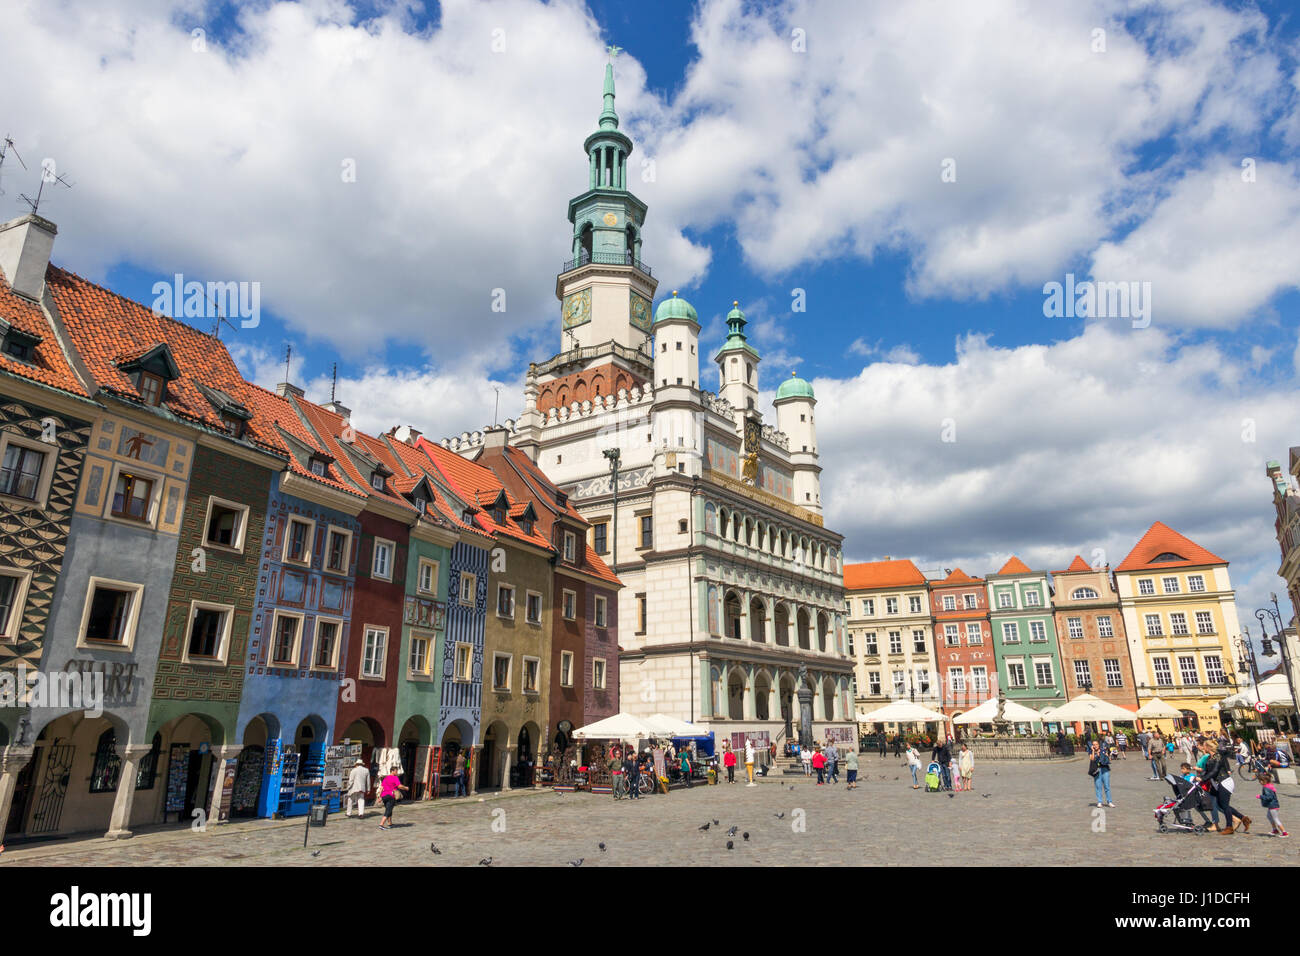 POZNAN, POLAND - AUG 20, 2014: Colorful main square and town hall of Poznan in Poland. Stock Photo